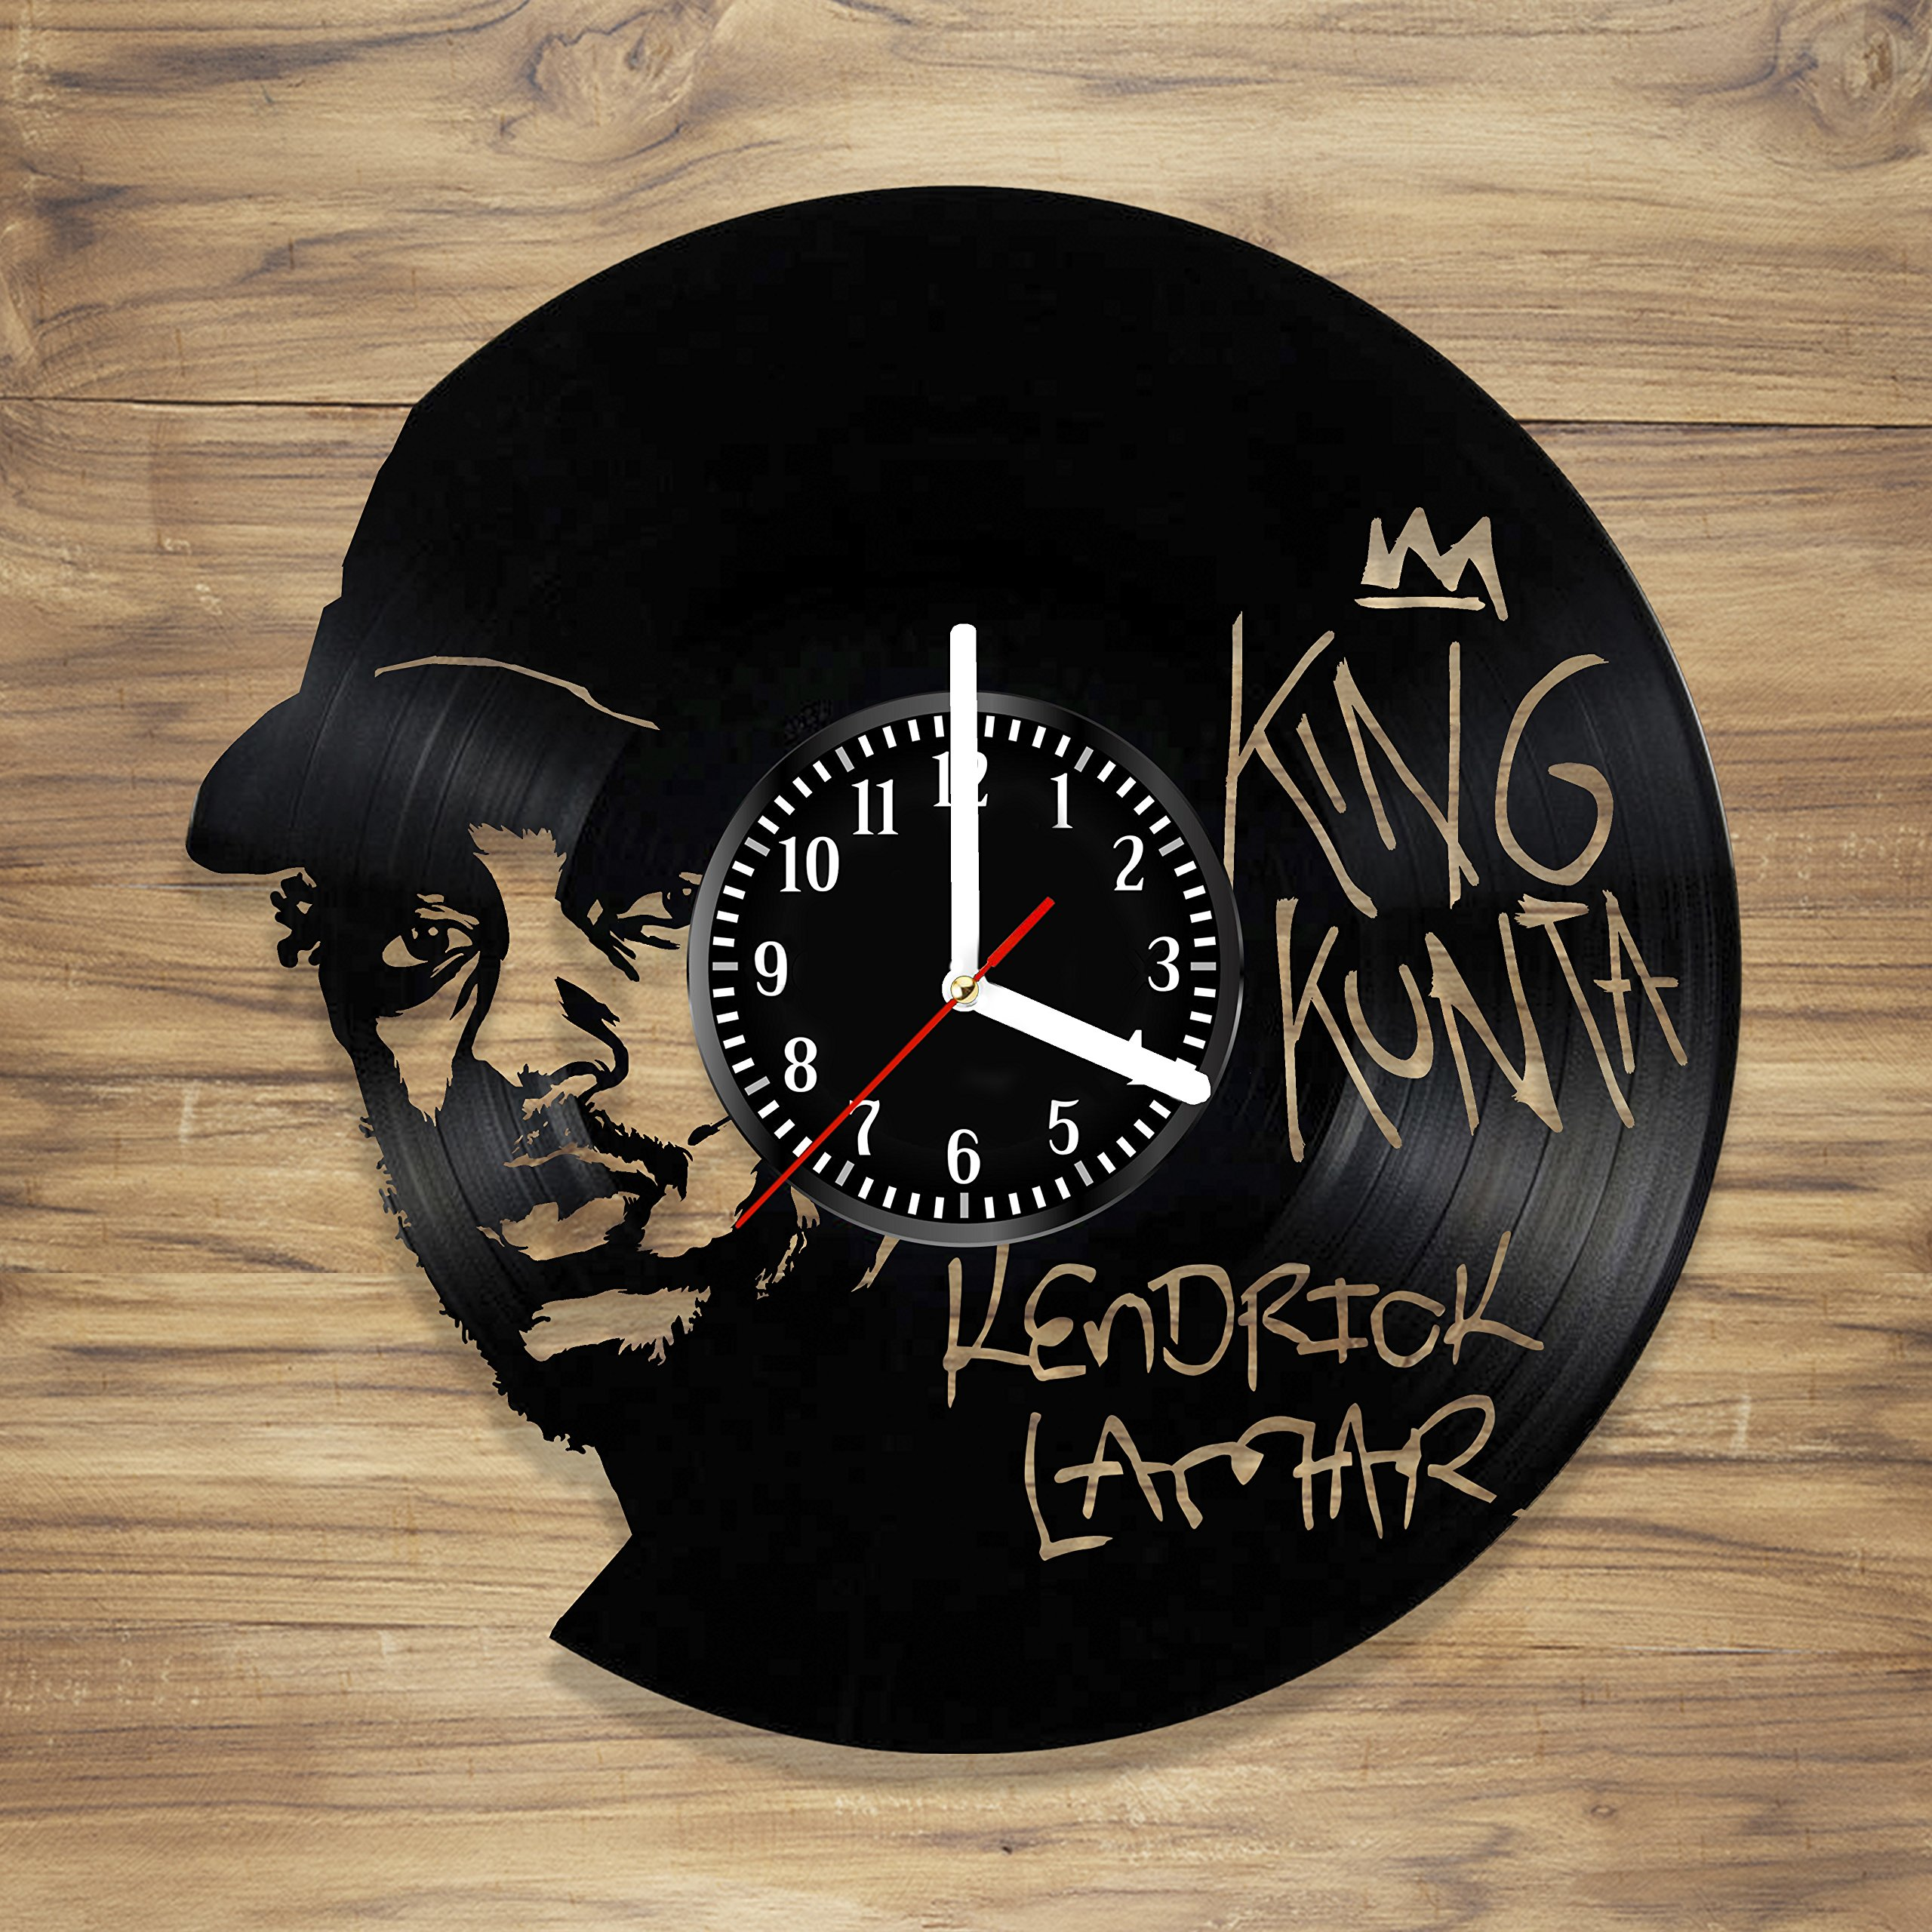 Amazon Com Kendrick Lamar Vinyl Record Wall Clock Rapper Rap King Music Perfect Art Decorate Home Style Unique Gift Idea For Him Her 12 Inches Home Kitchen